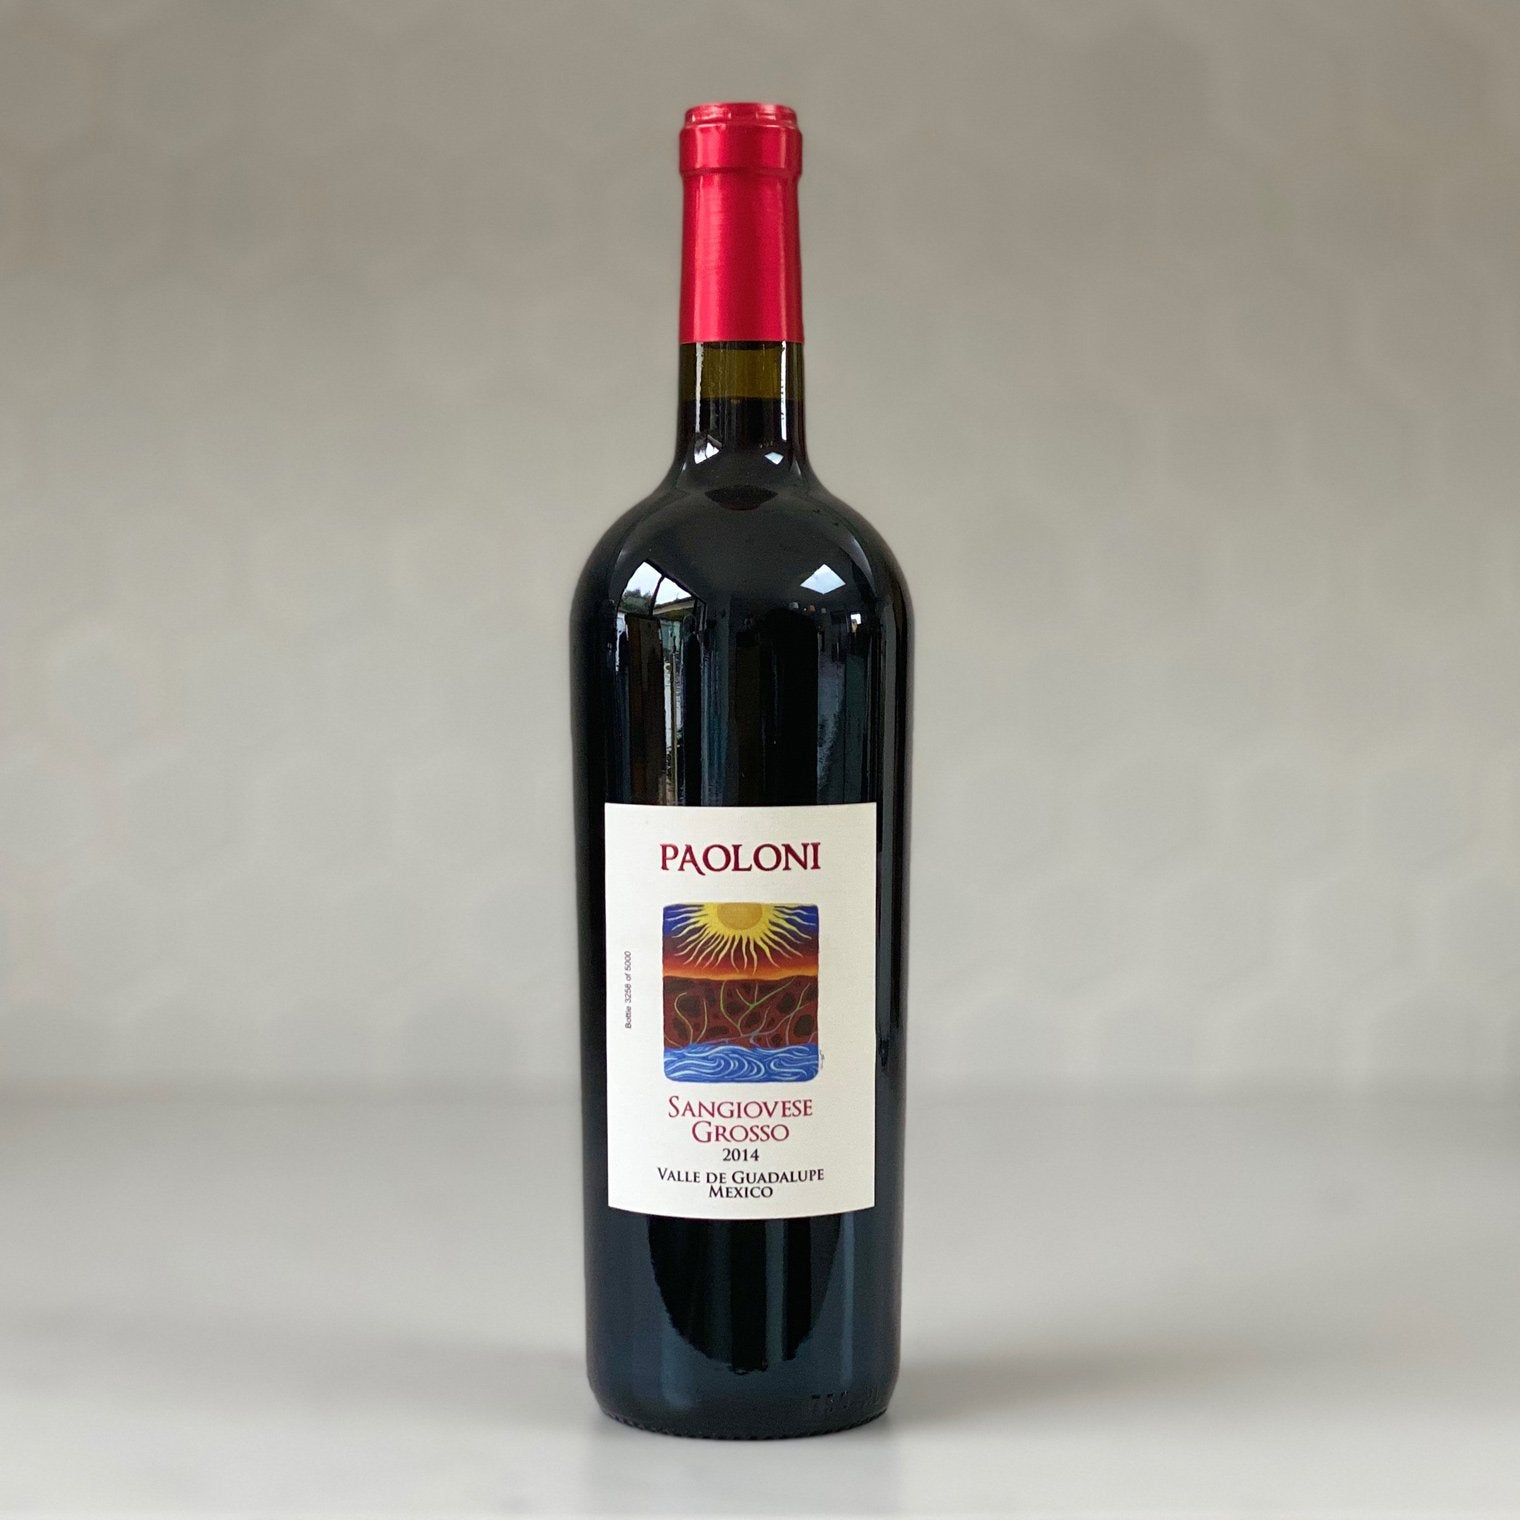 PAOLONI sangiovese 2014